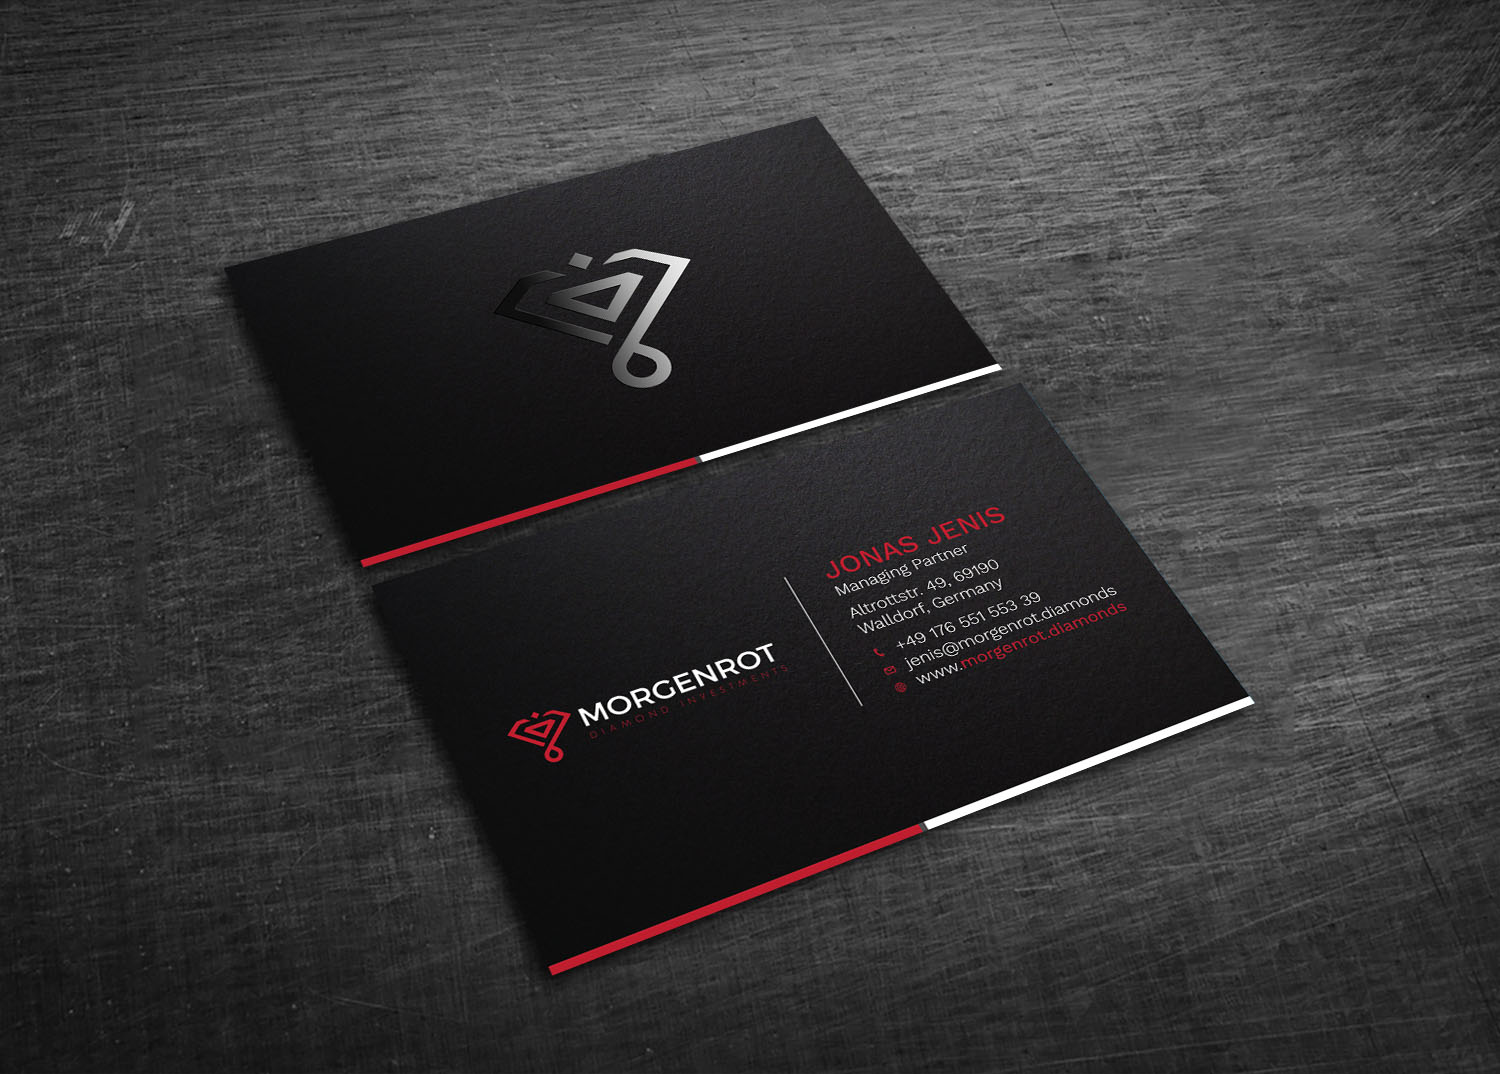 Elegant serious financial service business card design for business card design by graphic flame for morgenrot diamond investments ohg design 16424036 colourmoves